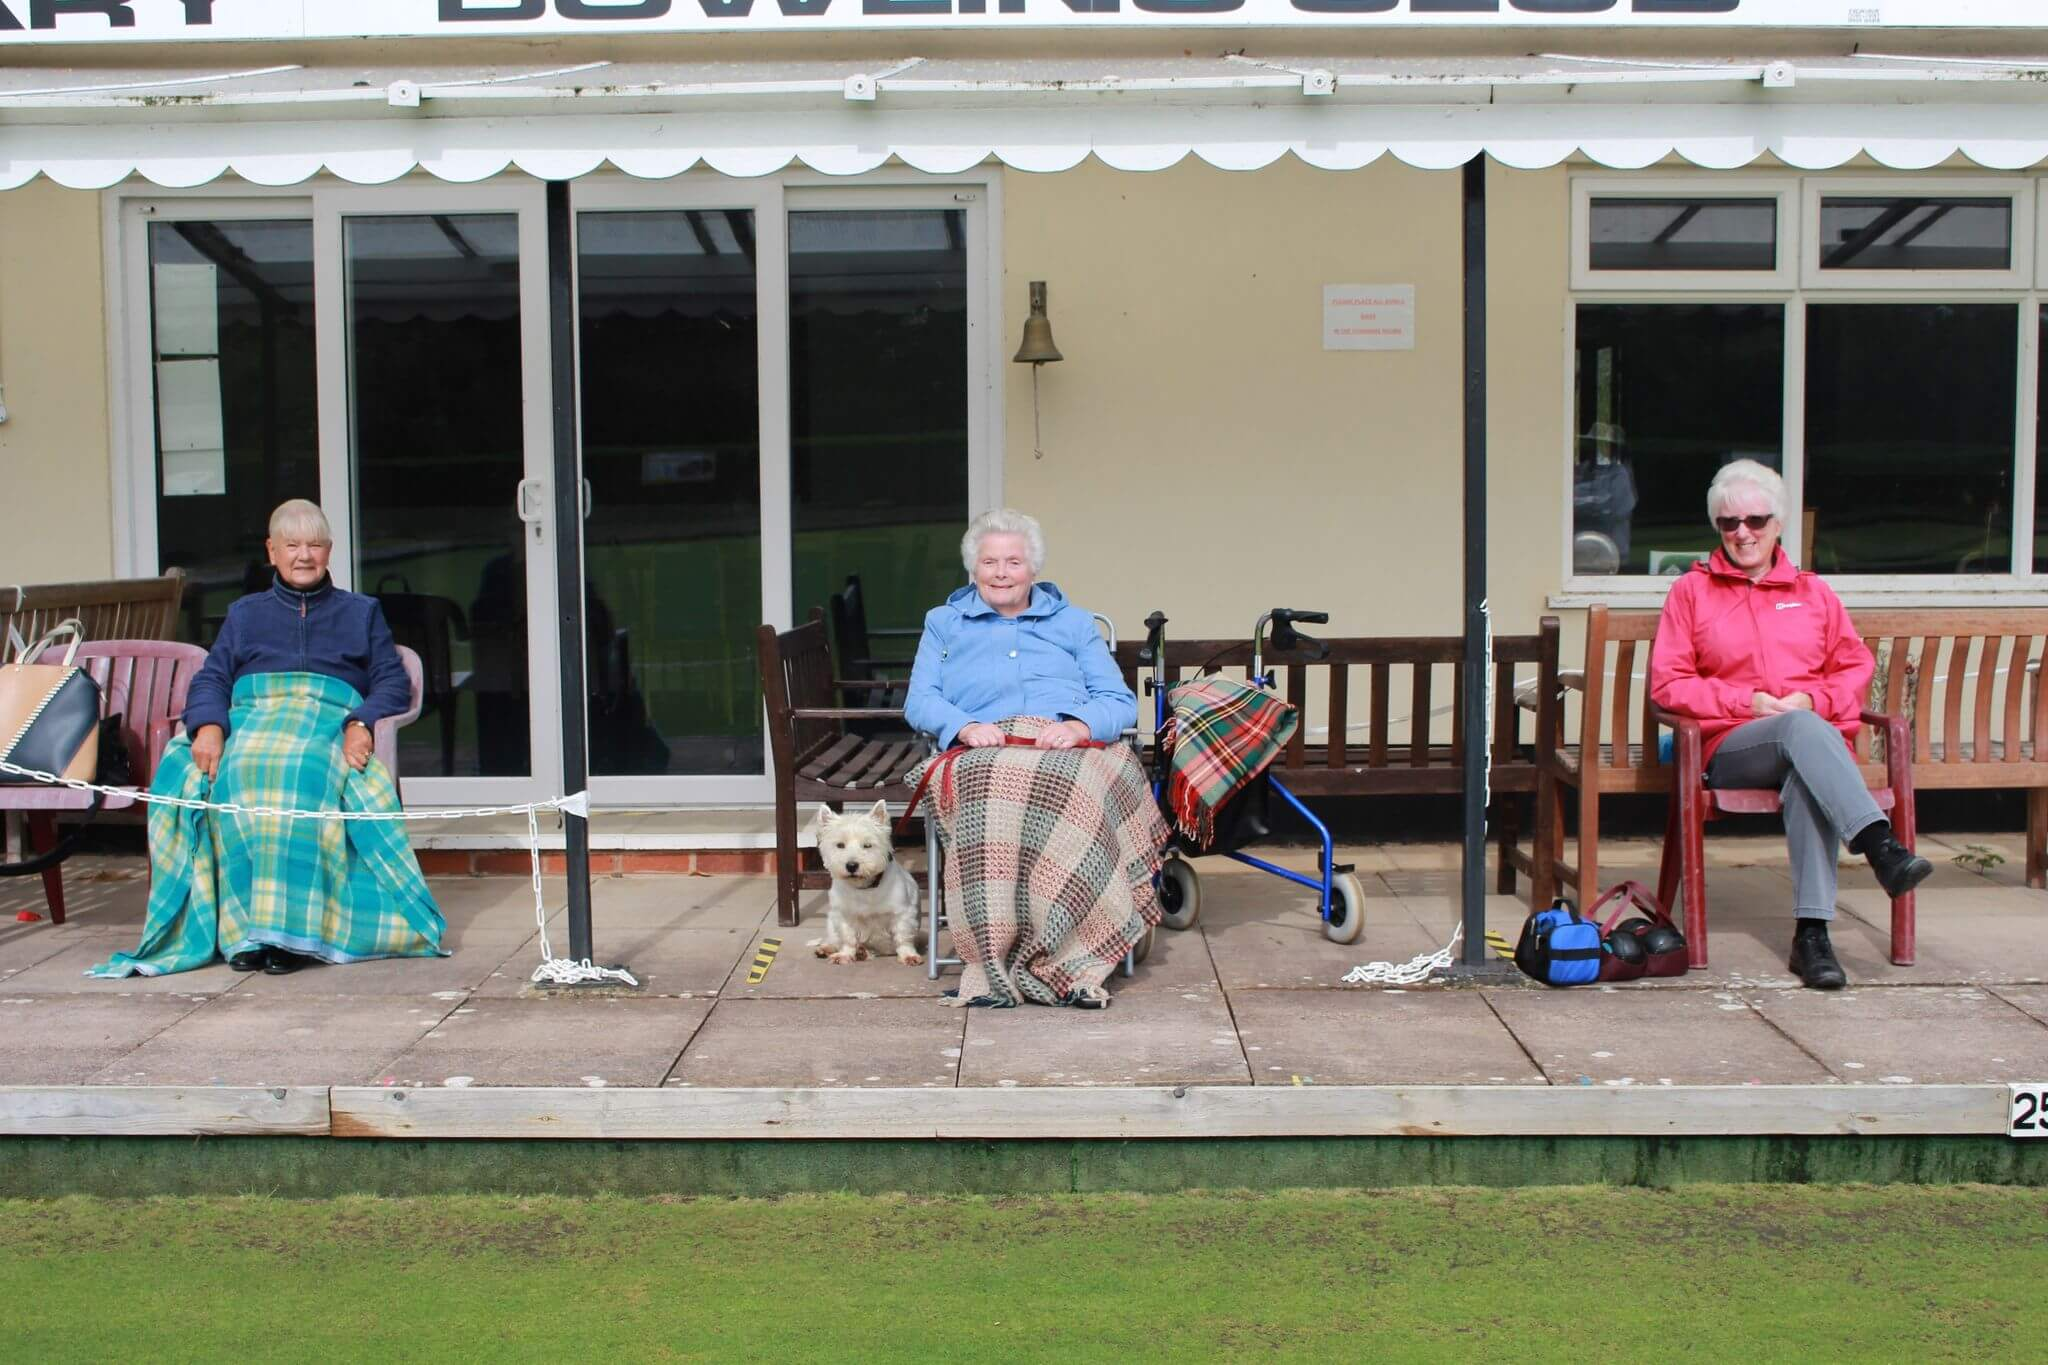 Socially distanced supporters taking in the action at Ottery St Mary Bowling Club.